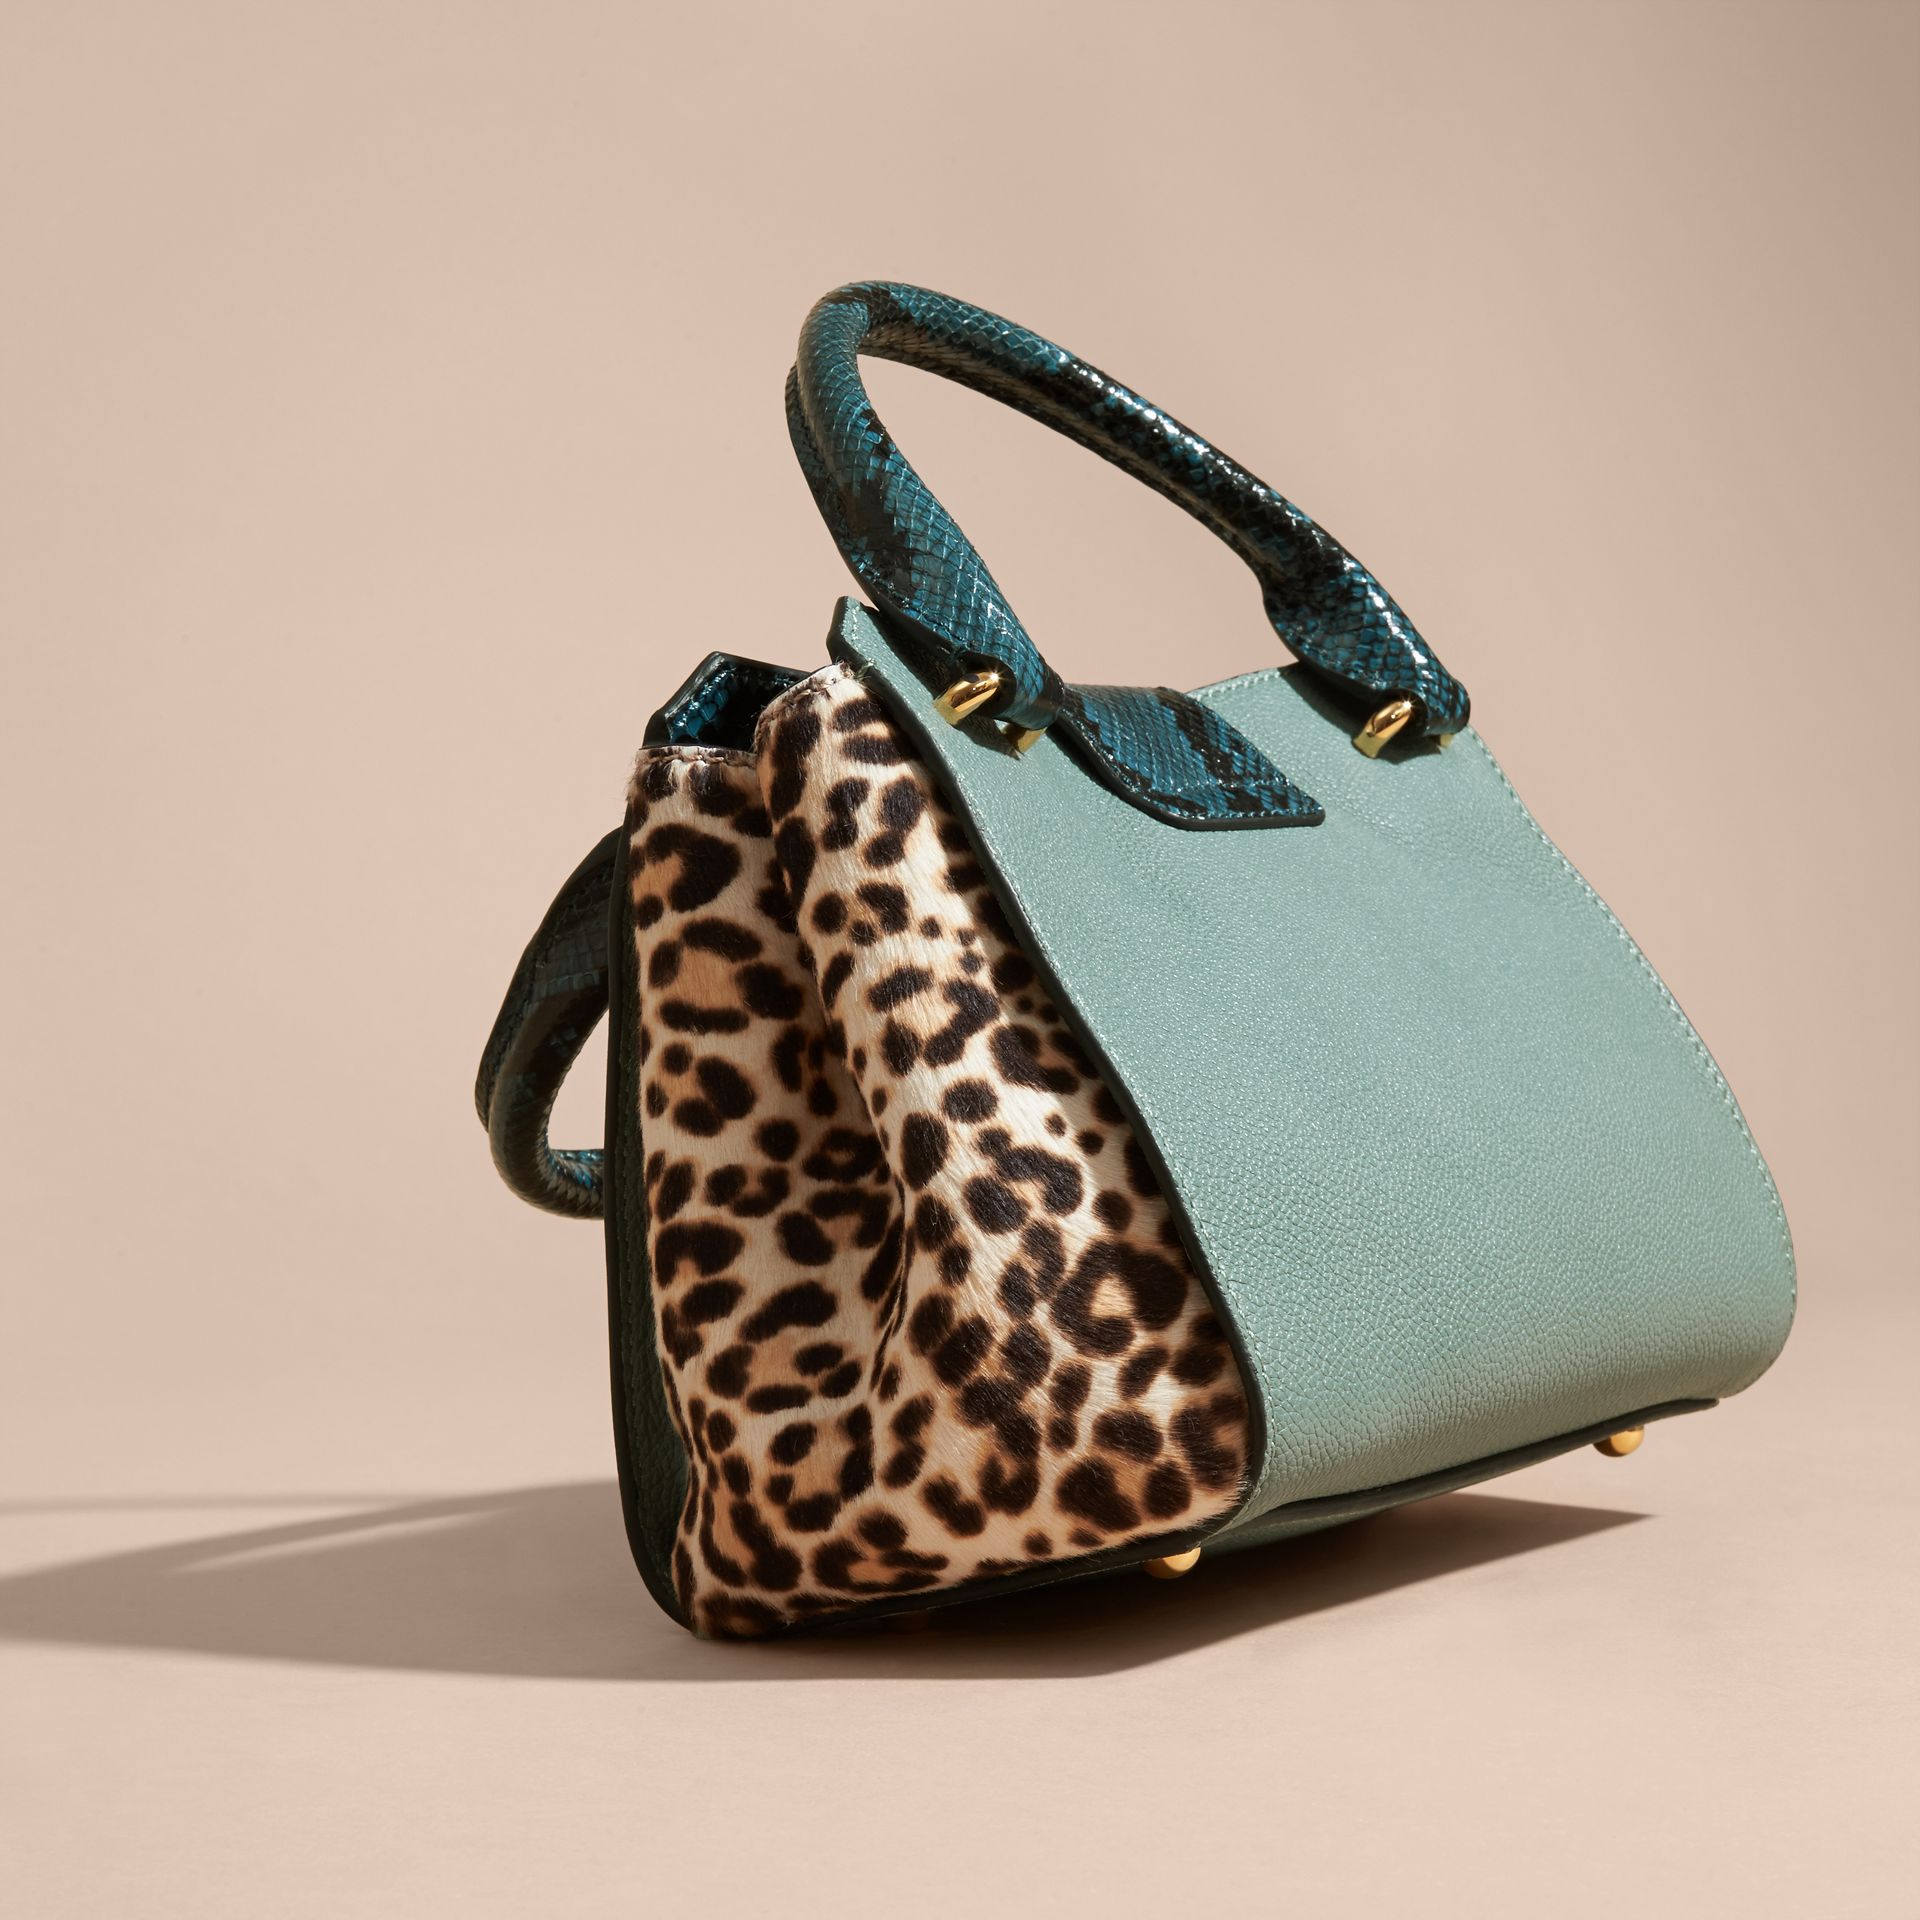 Eucalyptus green The Small Buckle Tote in Leather and  Leopard-print Calfskin Eucalyptus Green - gallery image 5